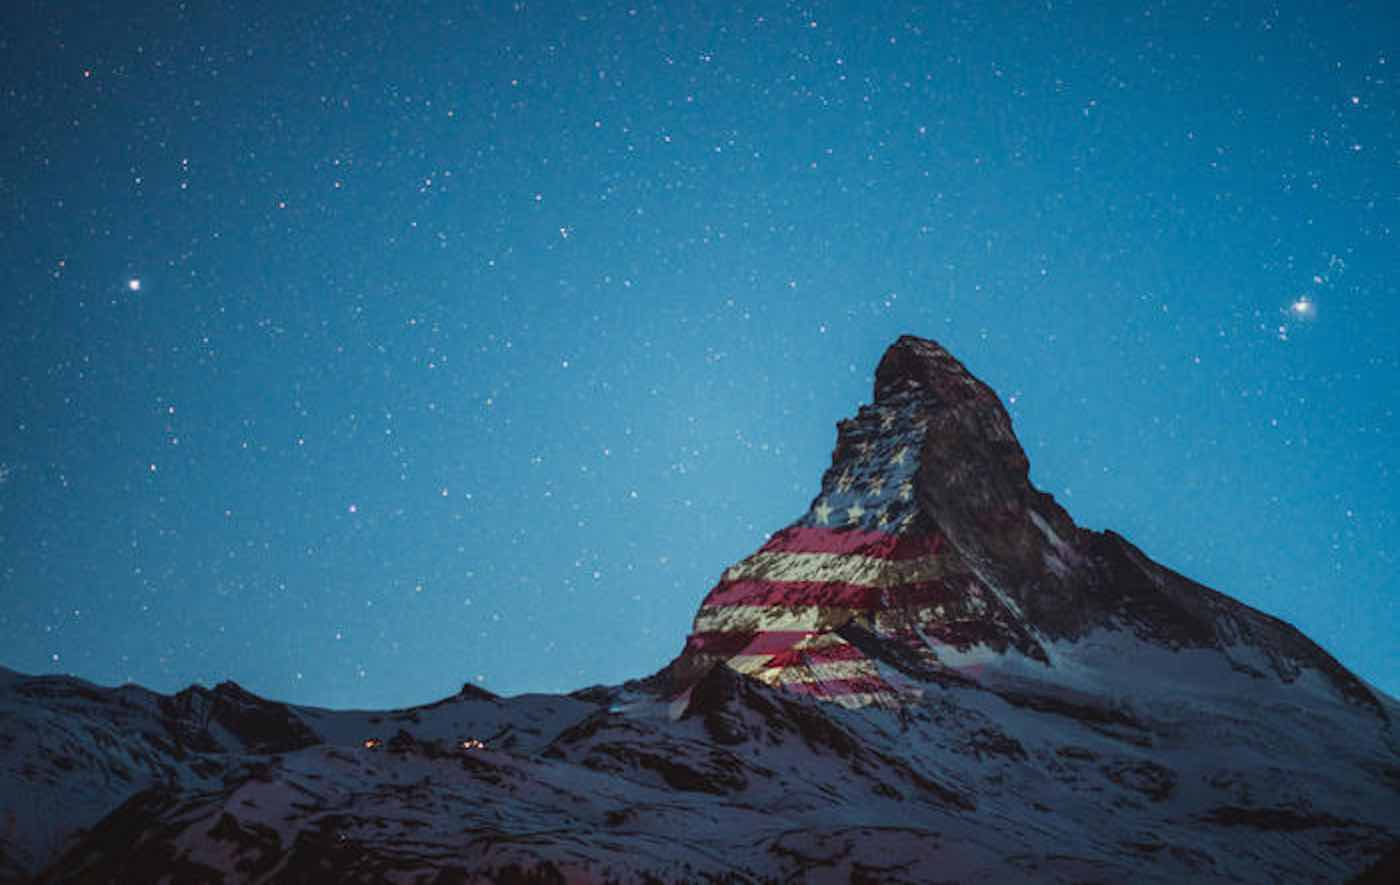 Switzerland Projects American Flag Onto Alps in Show of Solidarity